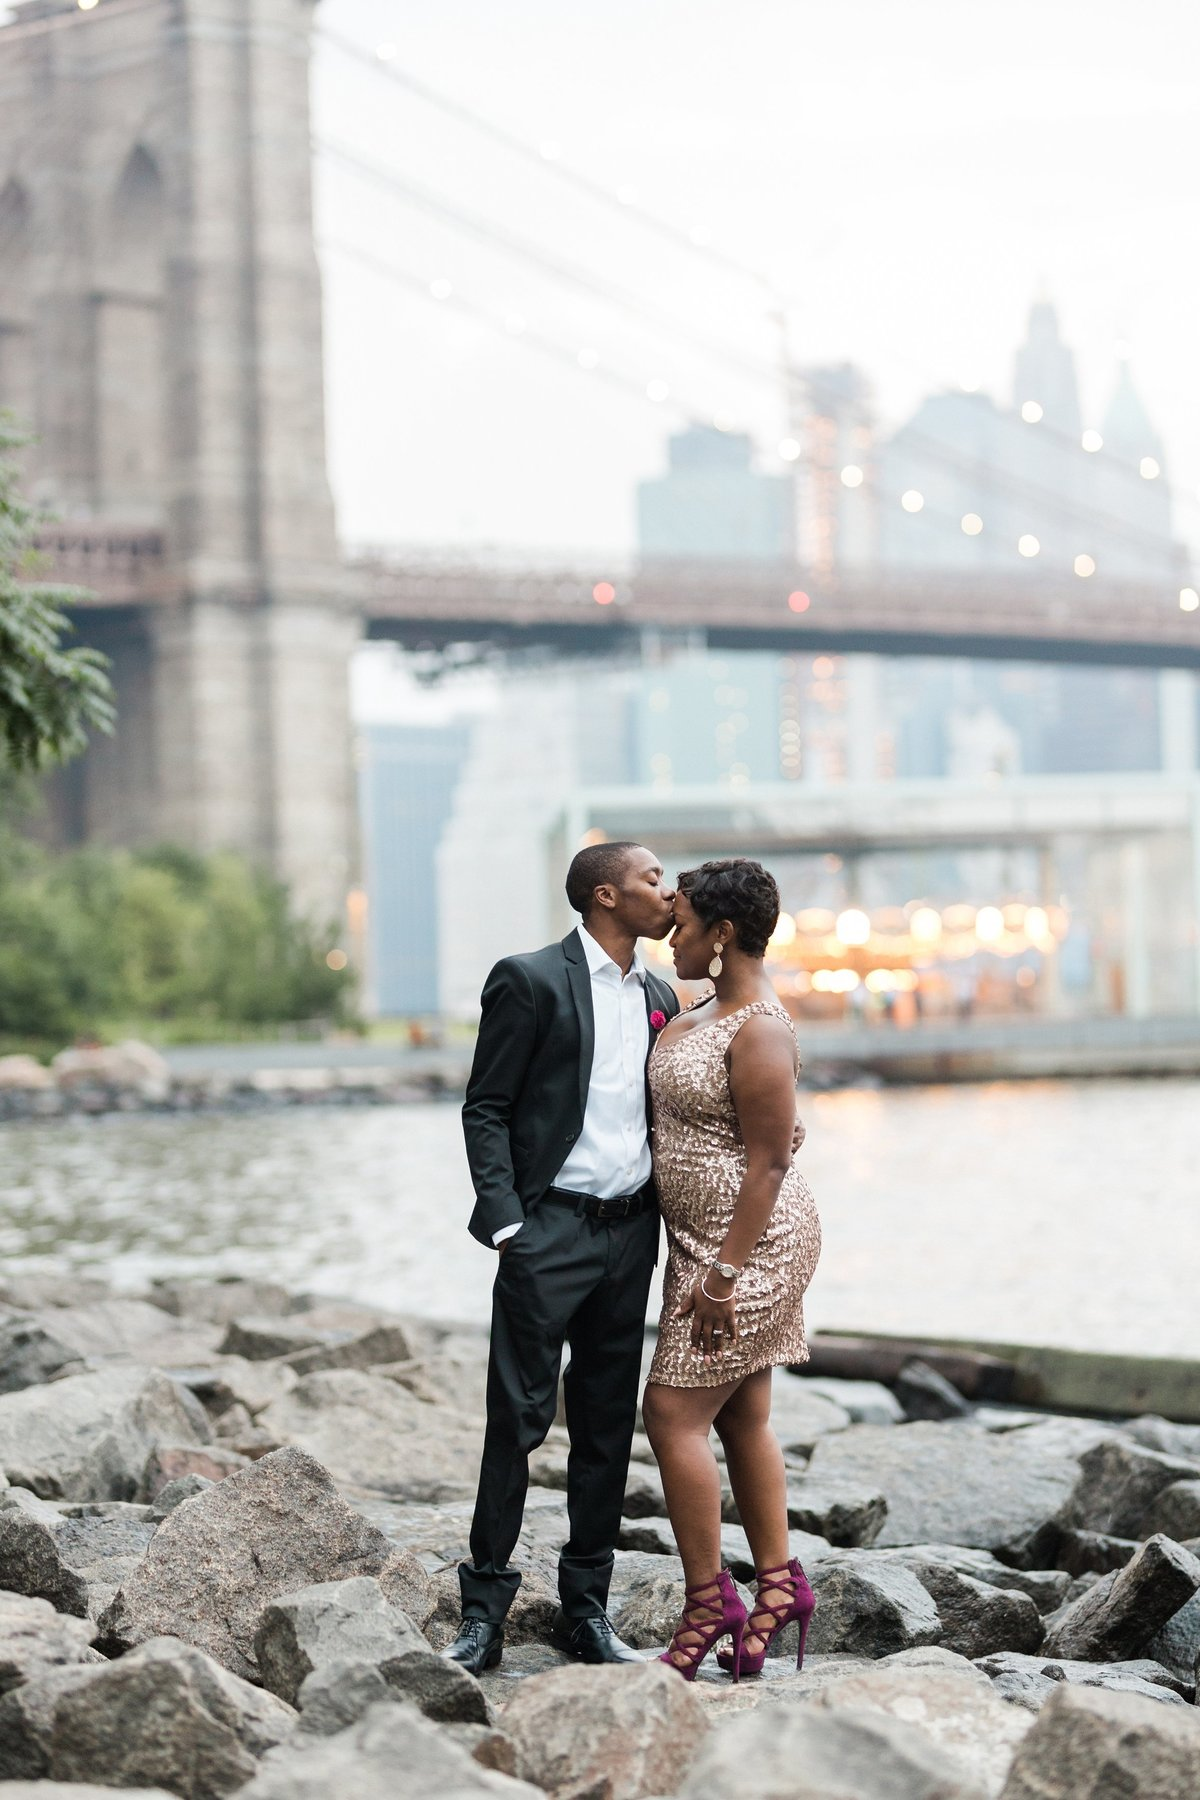 Dumbo Brooklyn Bridge engagement photos